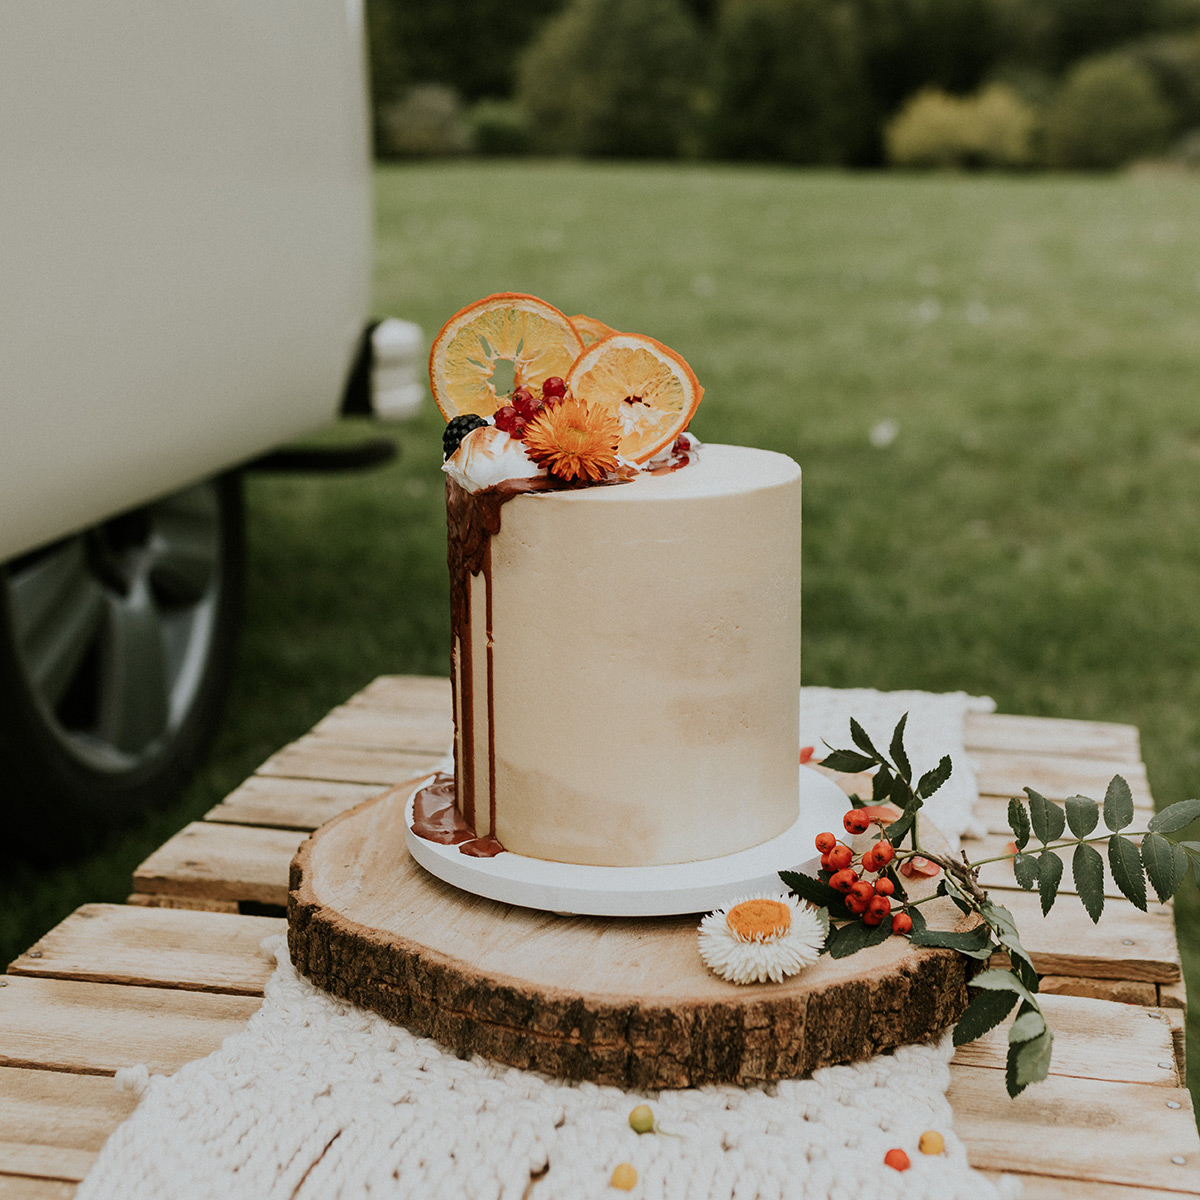 Boho Semi-Naked Wedding Cake with Dried Orange Slices, Dried Flowers, Caramel Drip